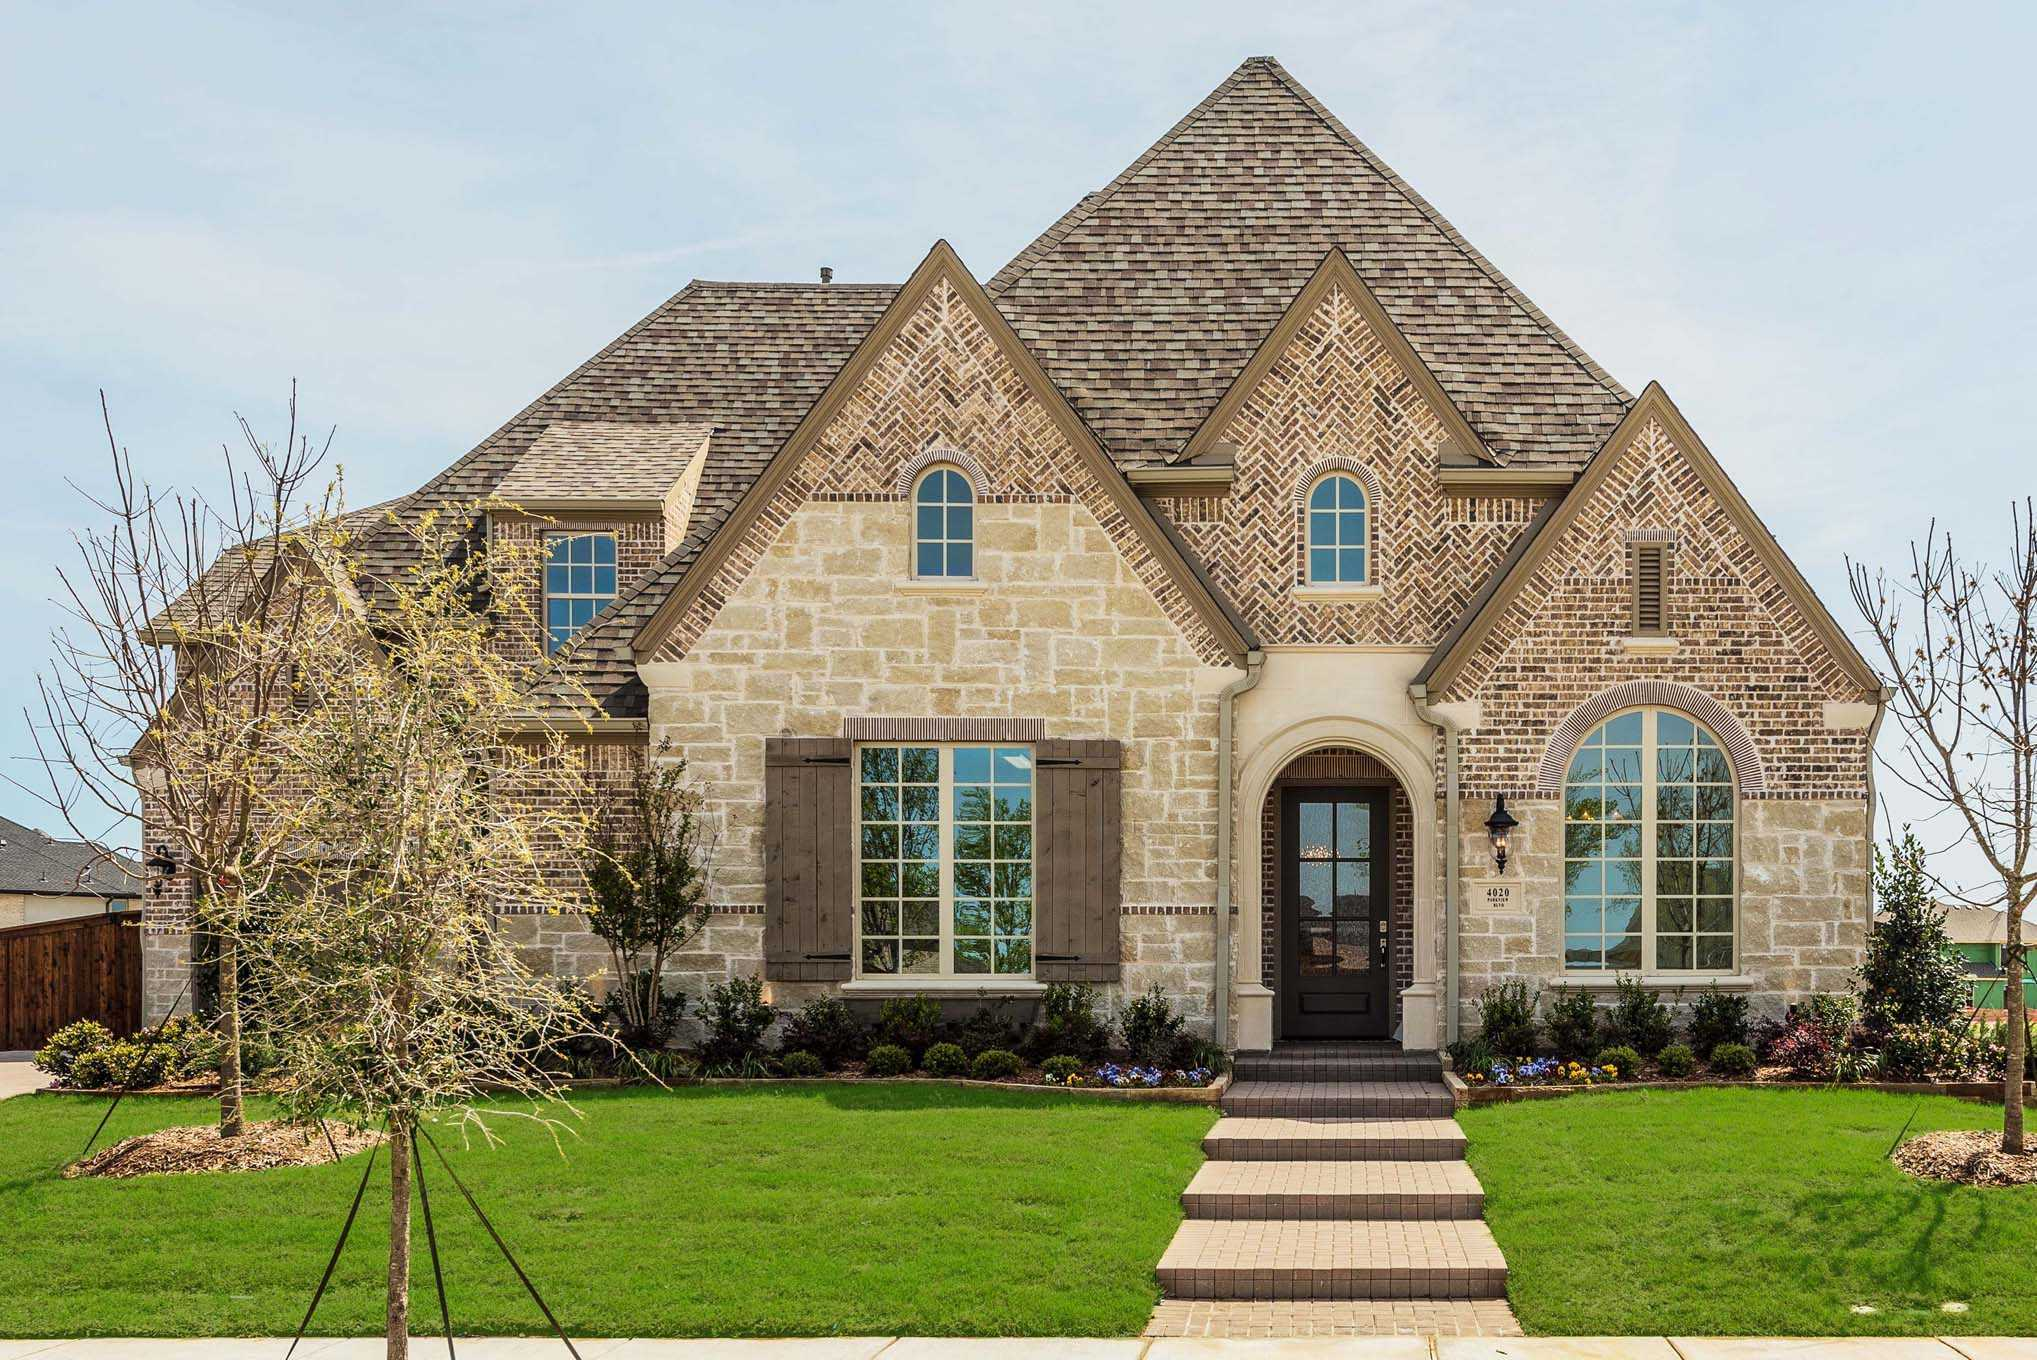 New homes in dallas tx 12 072 new homes newhomesource for New home source dfw